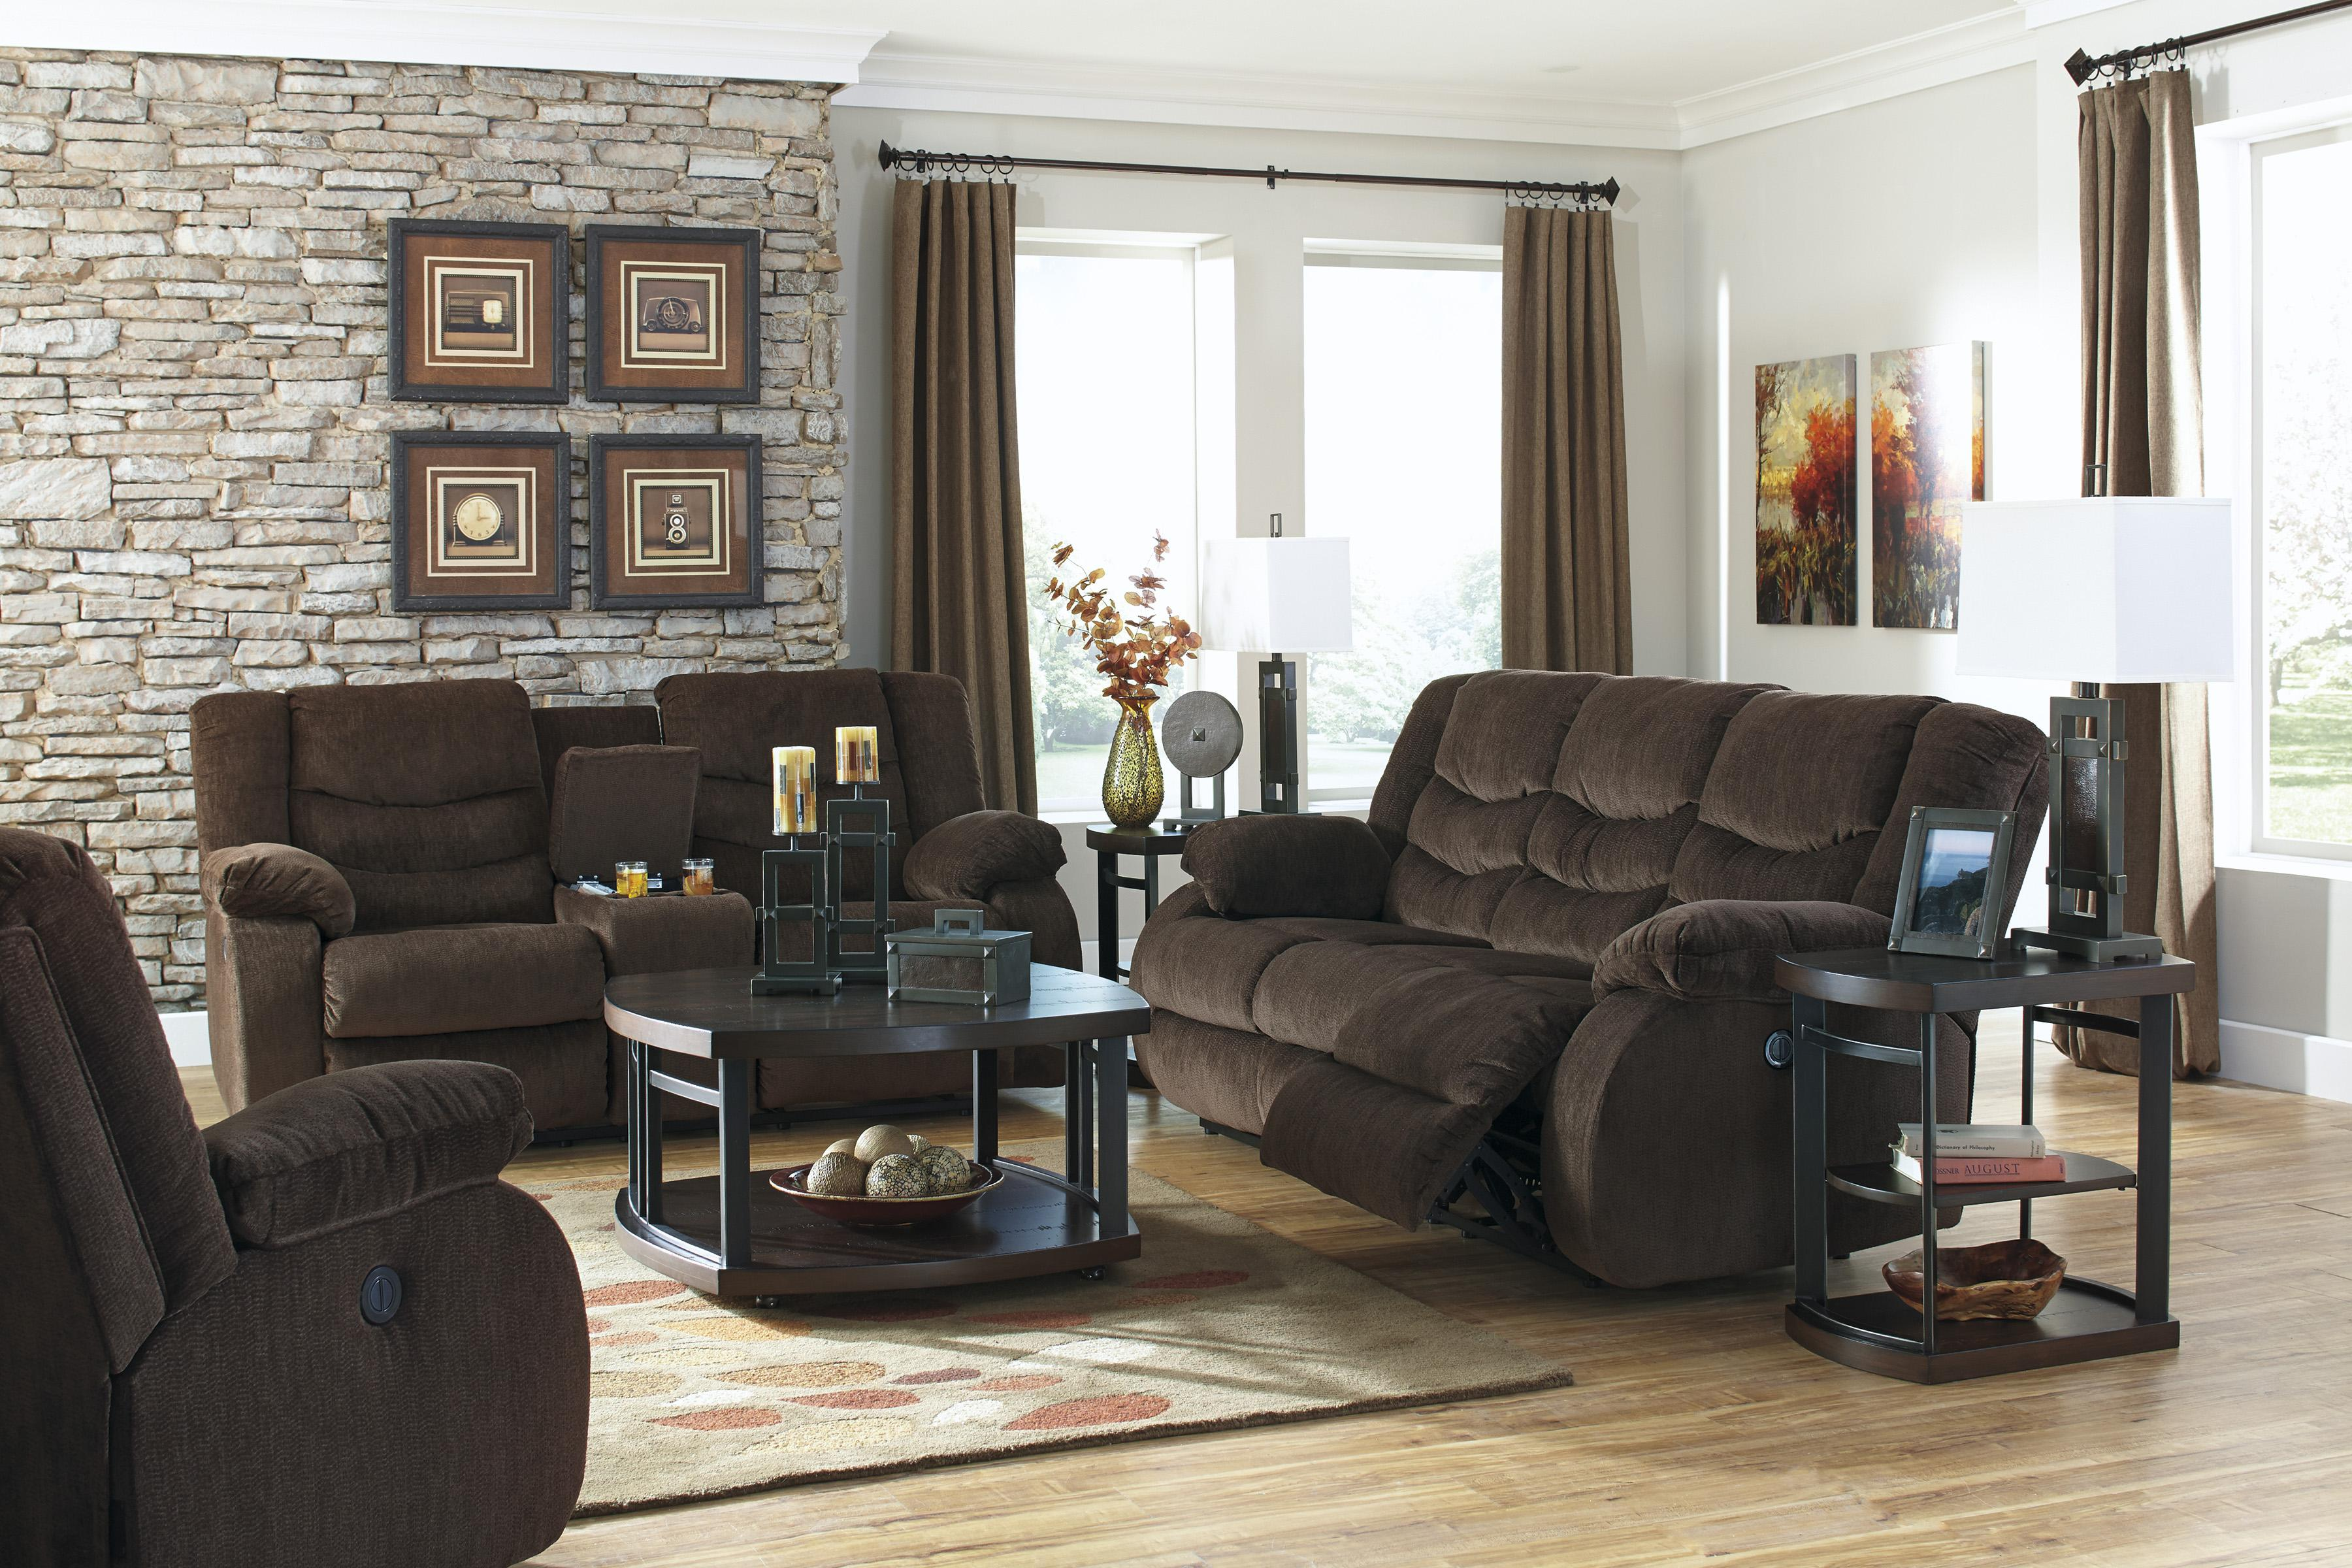 Signature Design by Ashley Garek - Cocoa Reclining Living Room Group - Item Number: 92003 Living Room Group 1